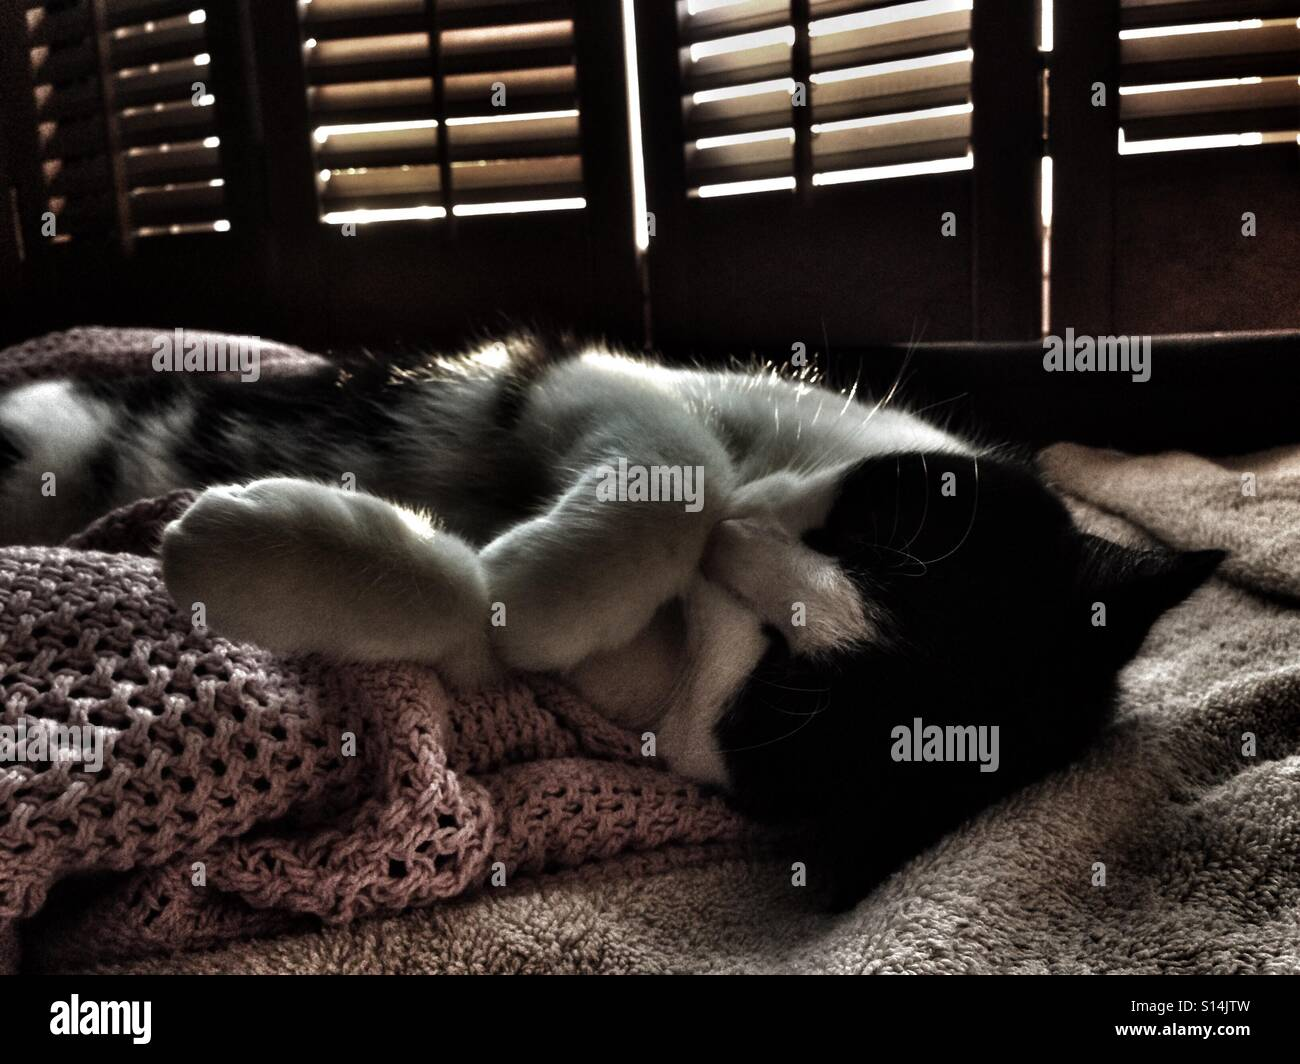 Cat napping by a window - Stock Image